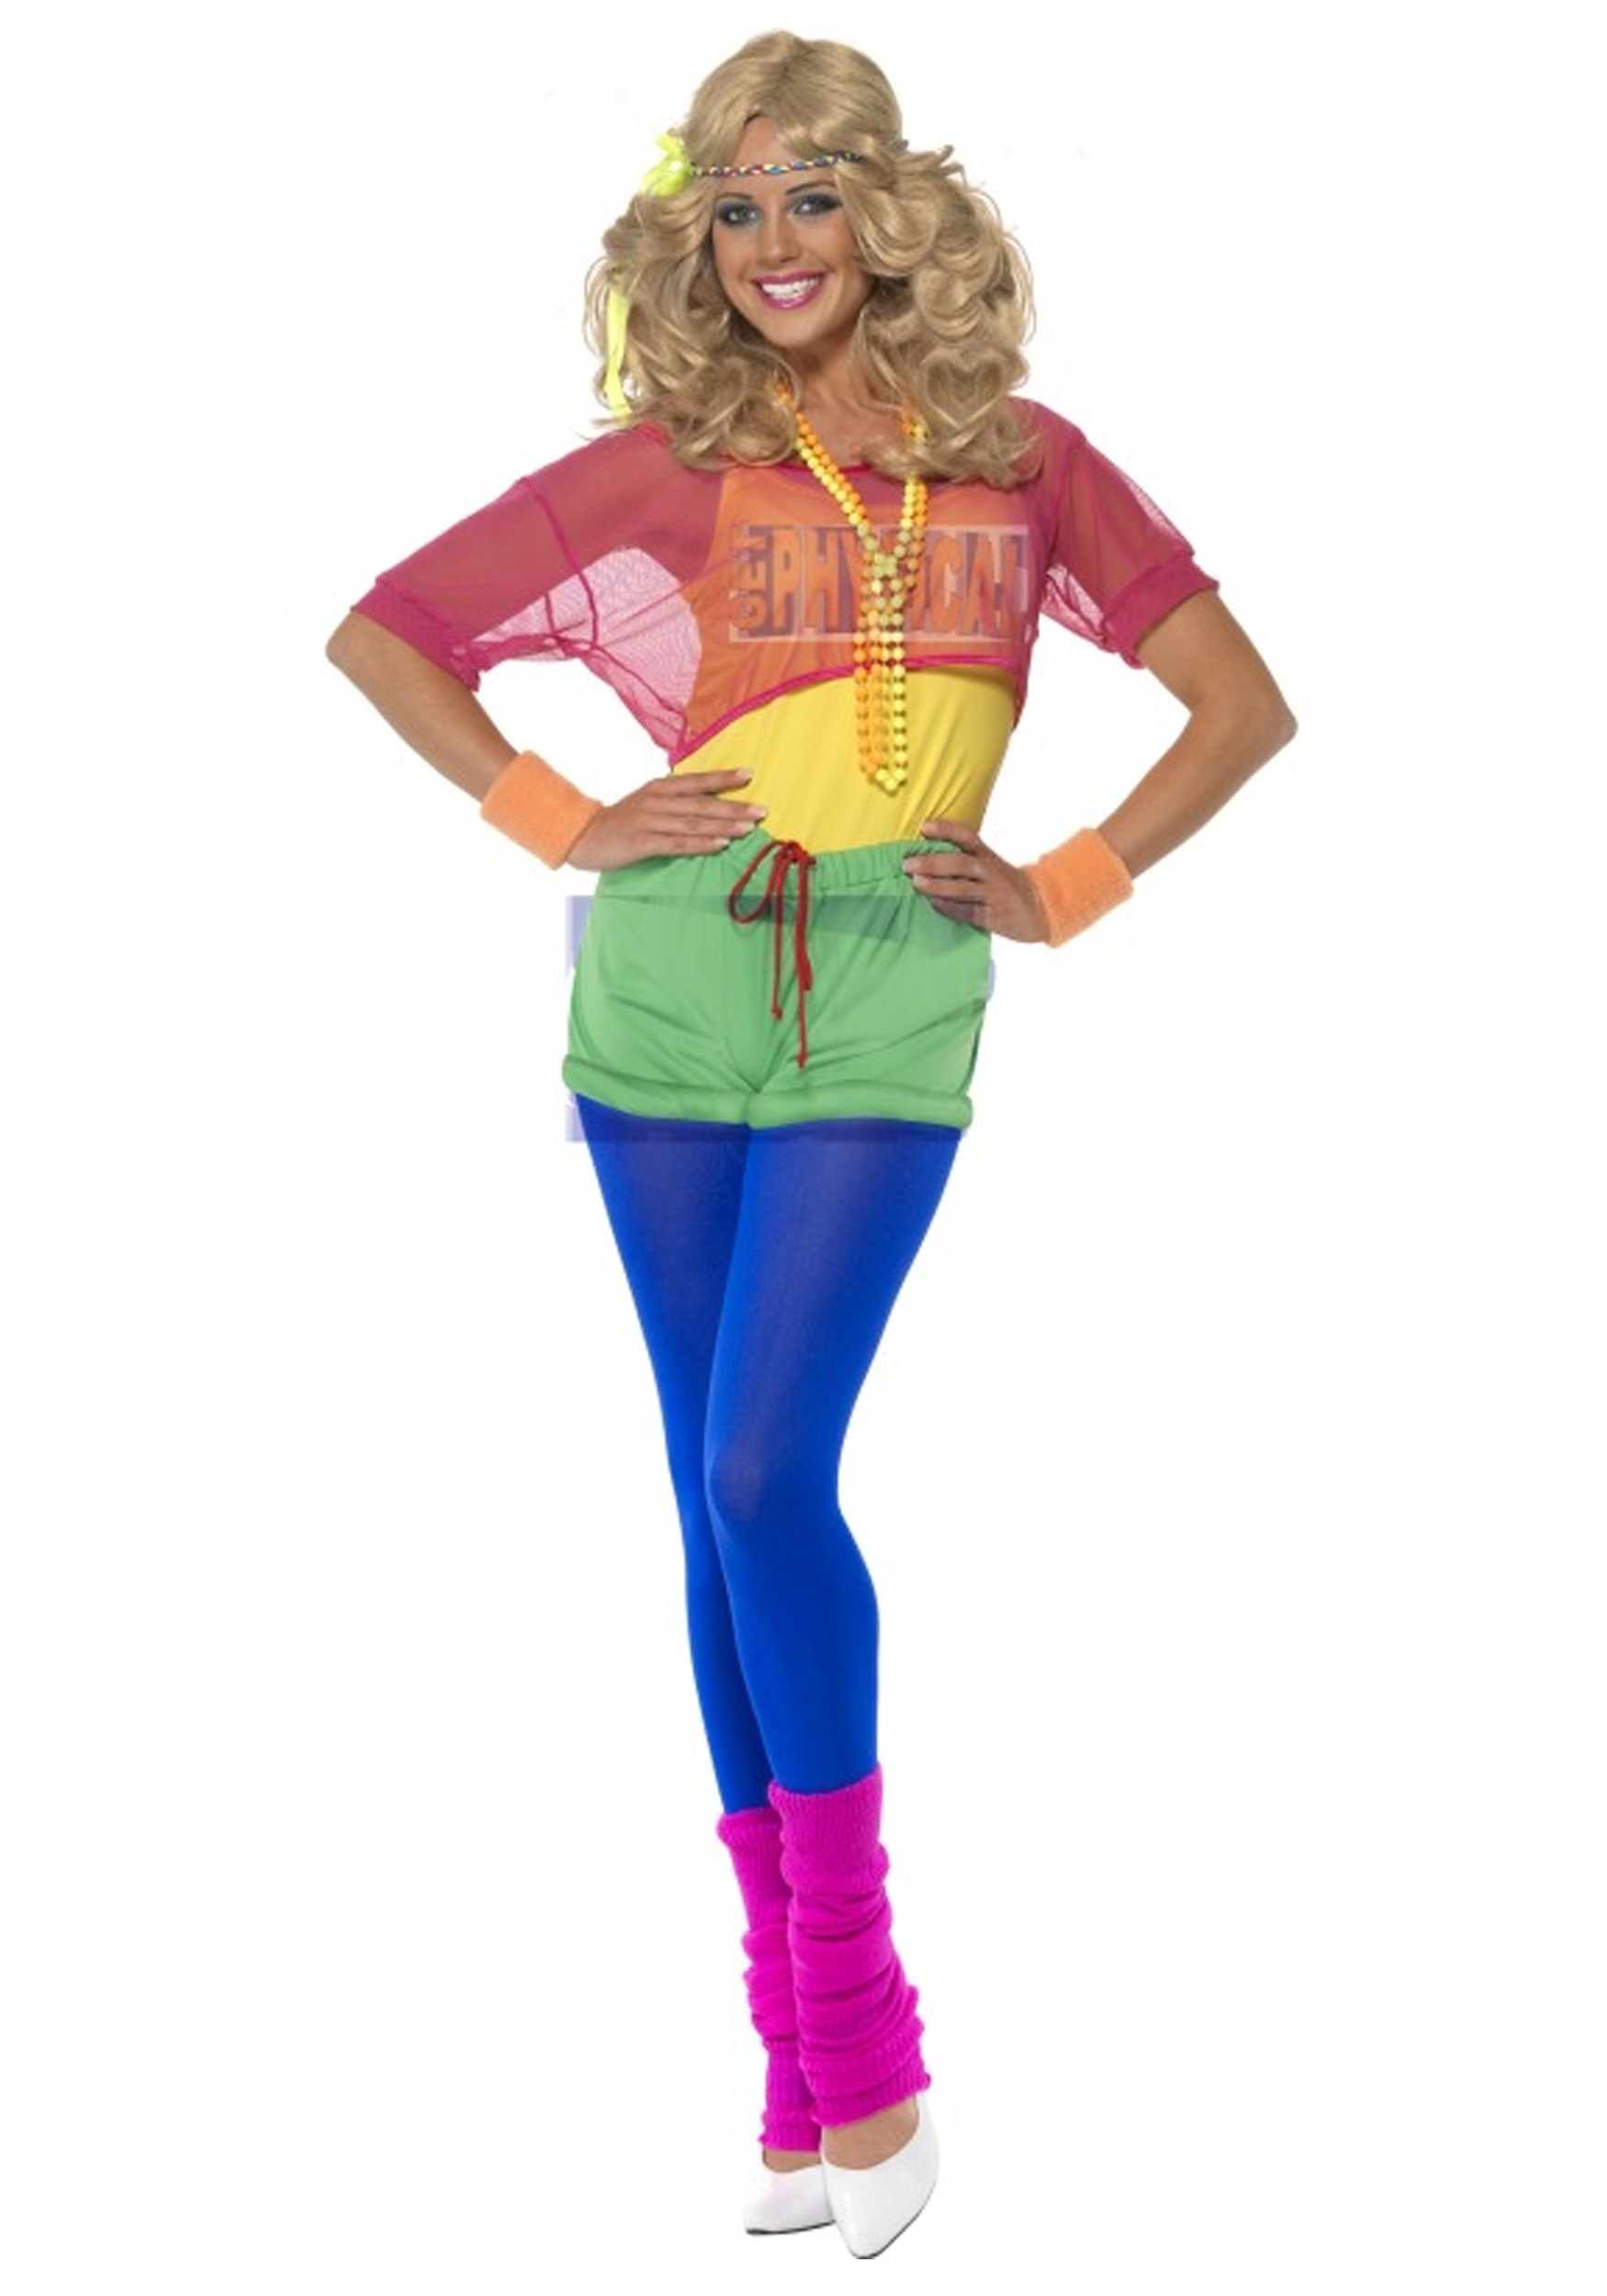 80s Fashion Ideas For Women s Costume Ideas s Fashion